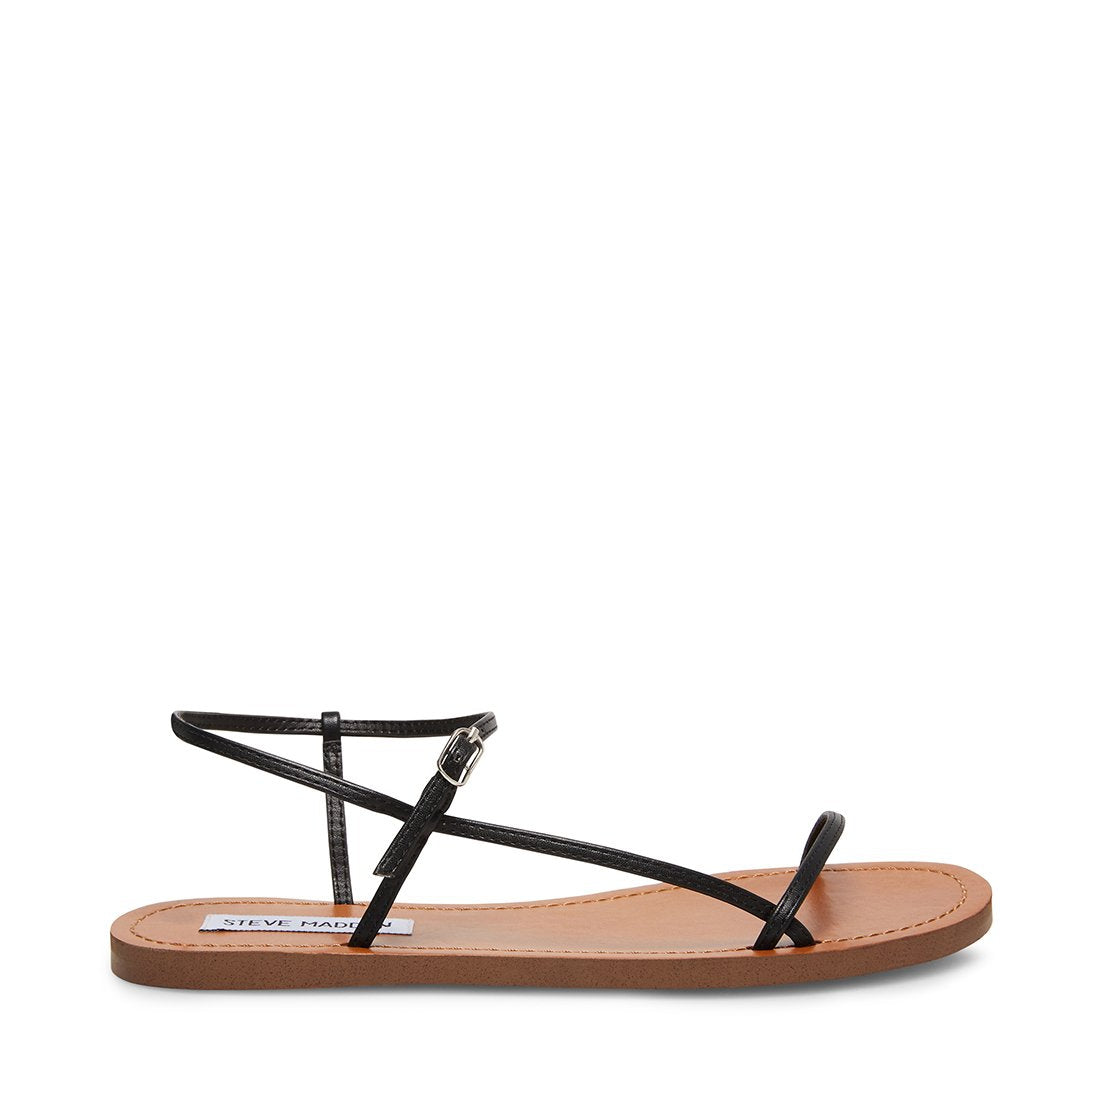 Obscure Black by Steve Madden